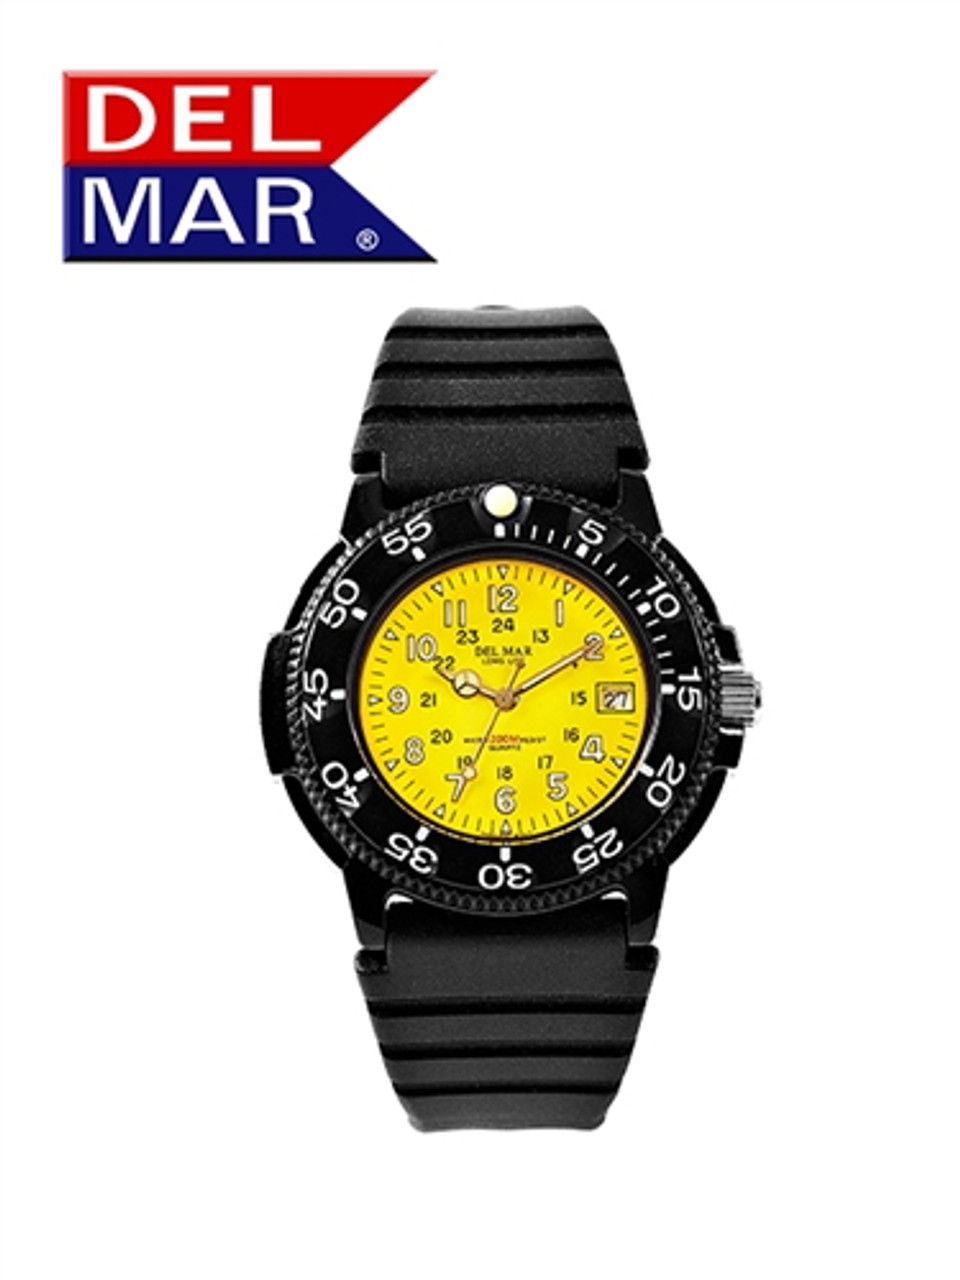 Del Mar Men's 200M Dive Watch with PU Band - Black, Blue, Yellow or Orange Face